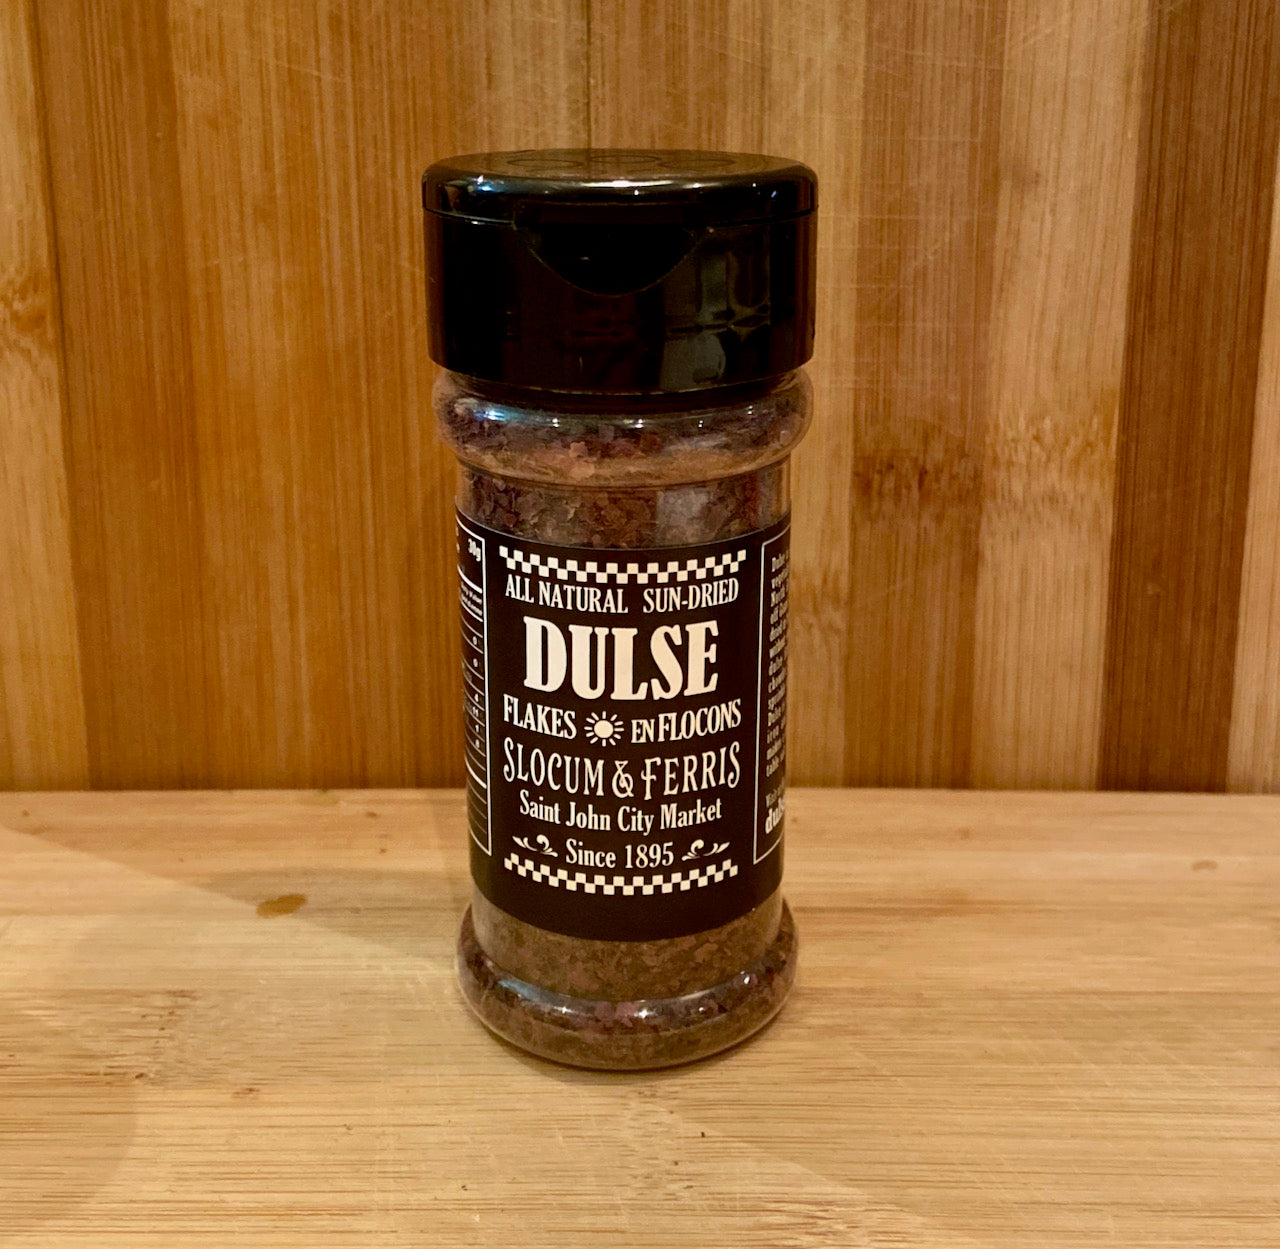 Slocum's Dulse Flakes